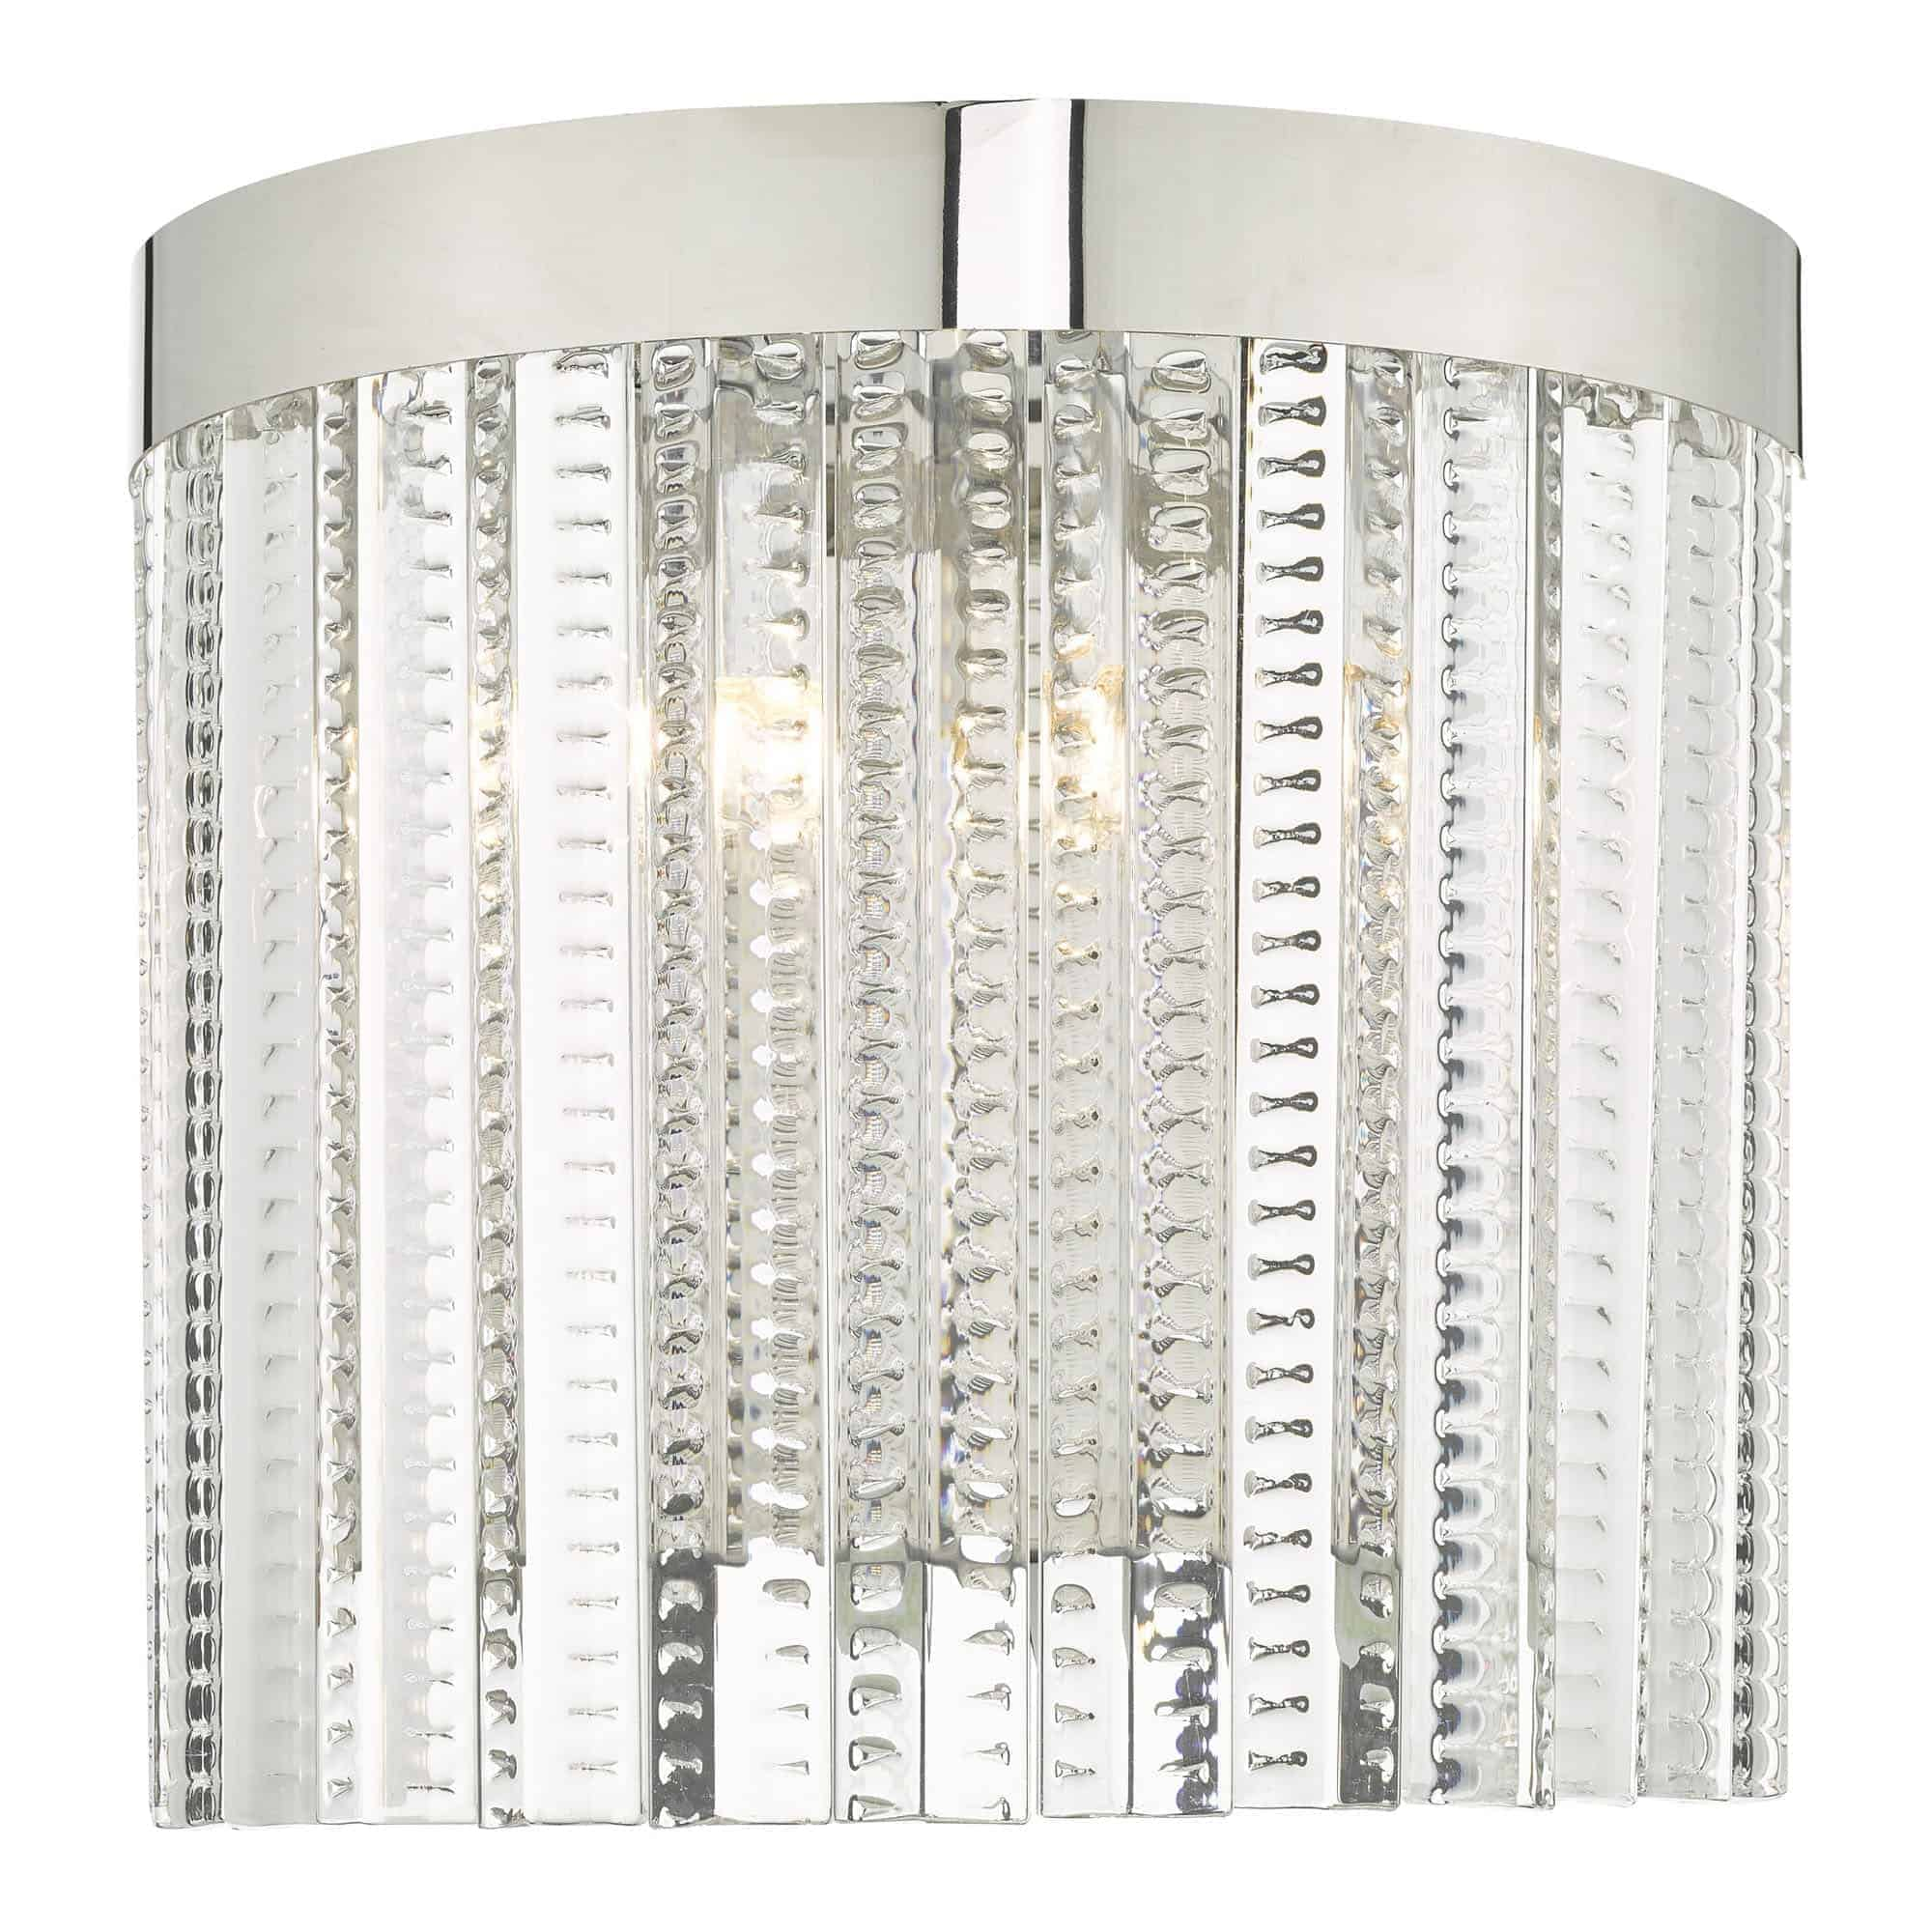 Dar LOR0908 Lorant 2 Light Wall Light Clear & Polished Chrome